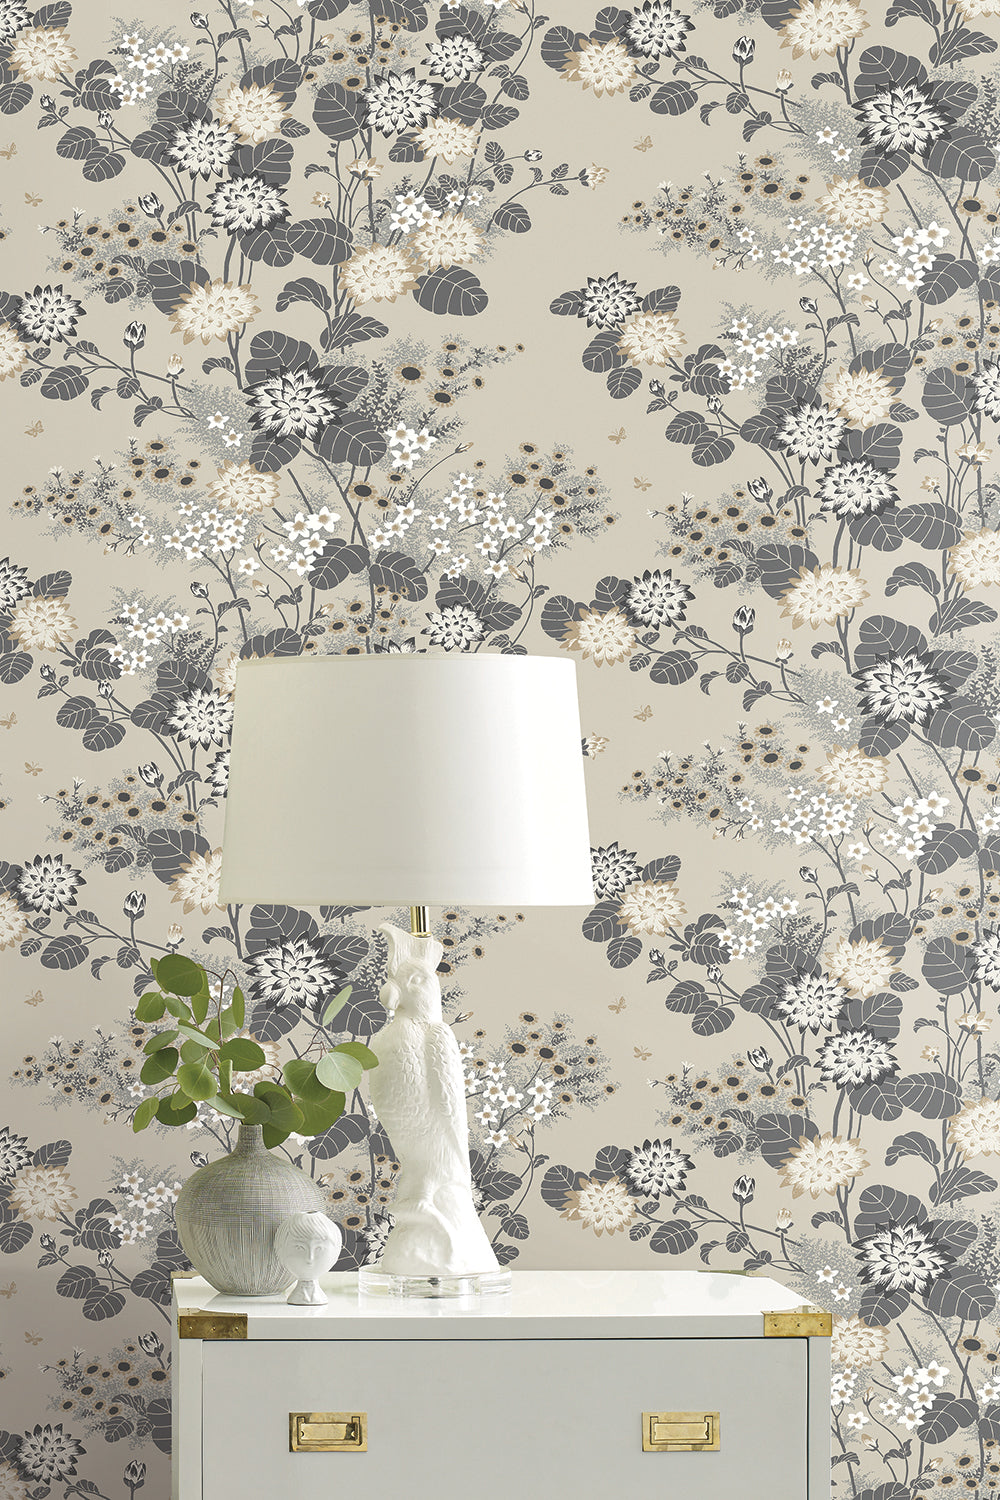 Chinese Floral Wallpaper Biscuit Florence Broadhurst